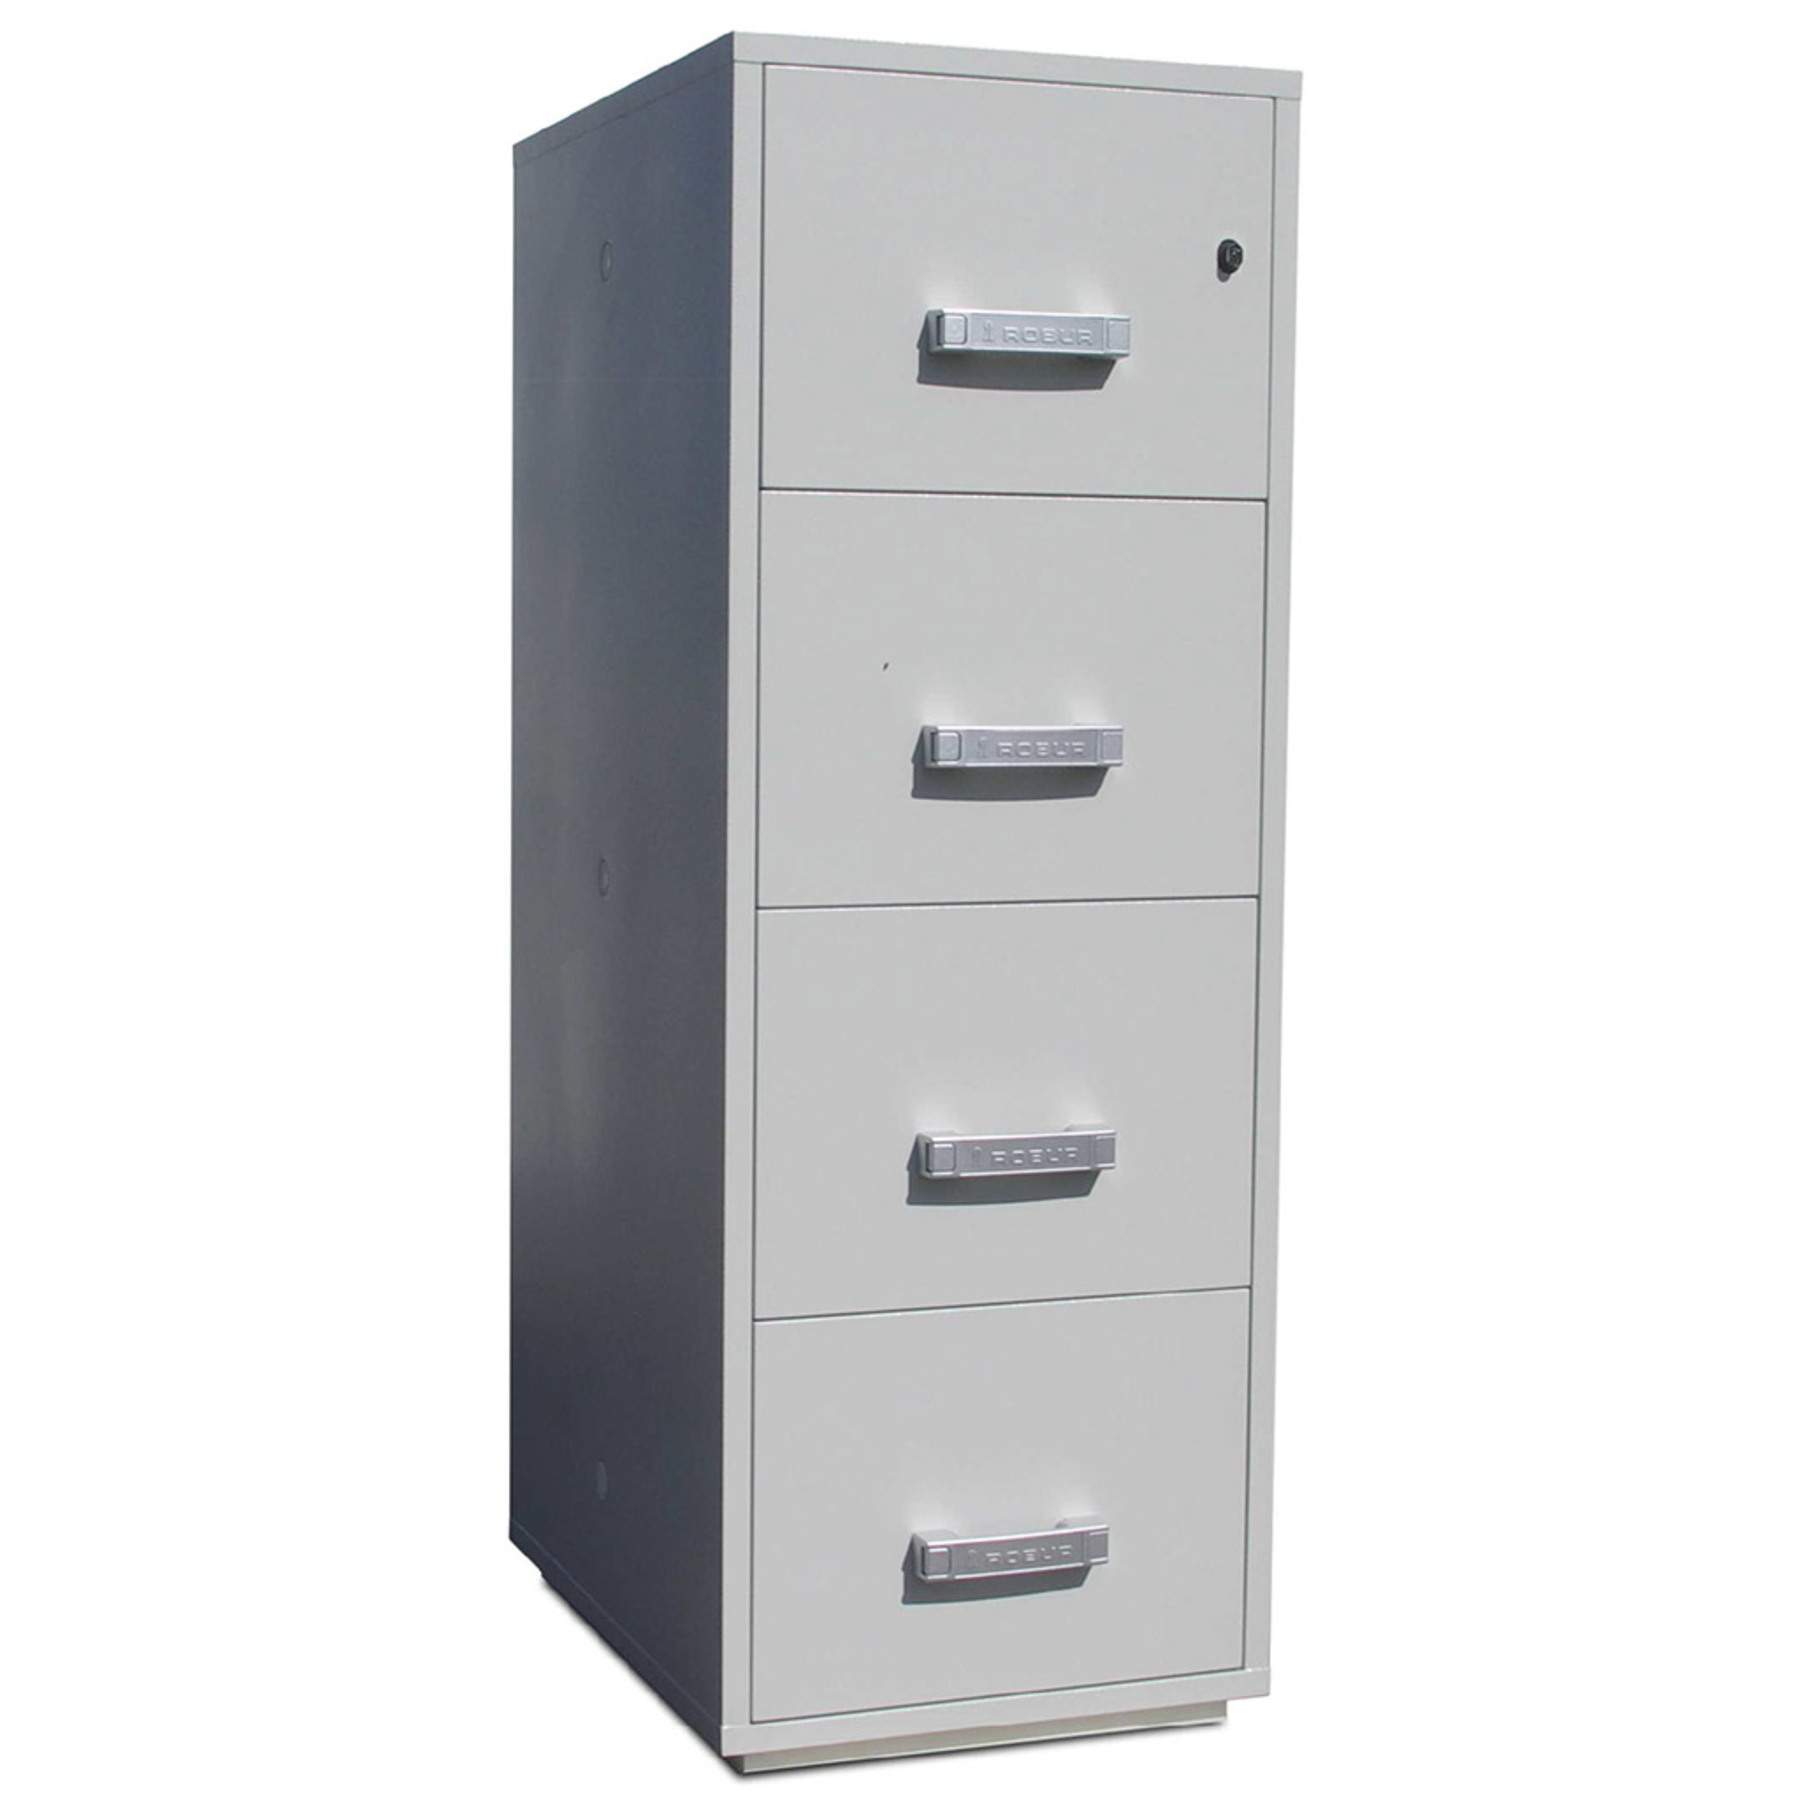 Cute fireproof filing cabinets for office furniture ideas with fireproof file cabinets